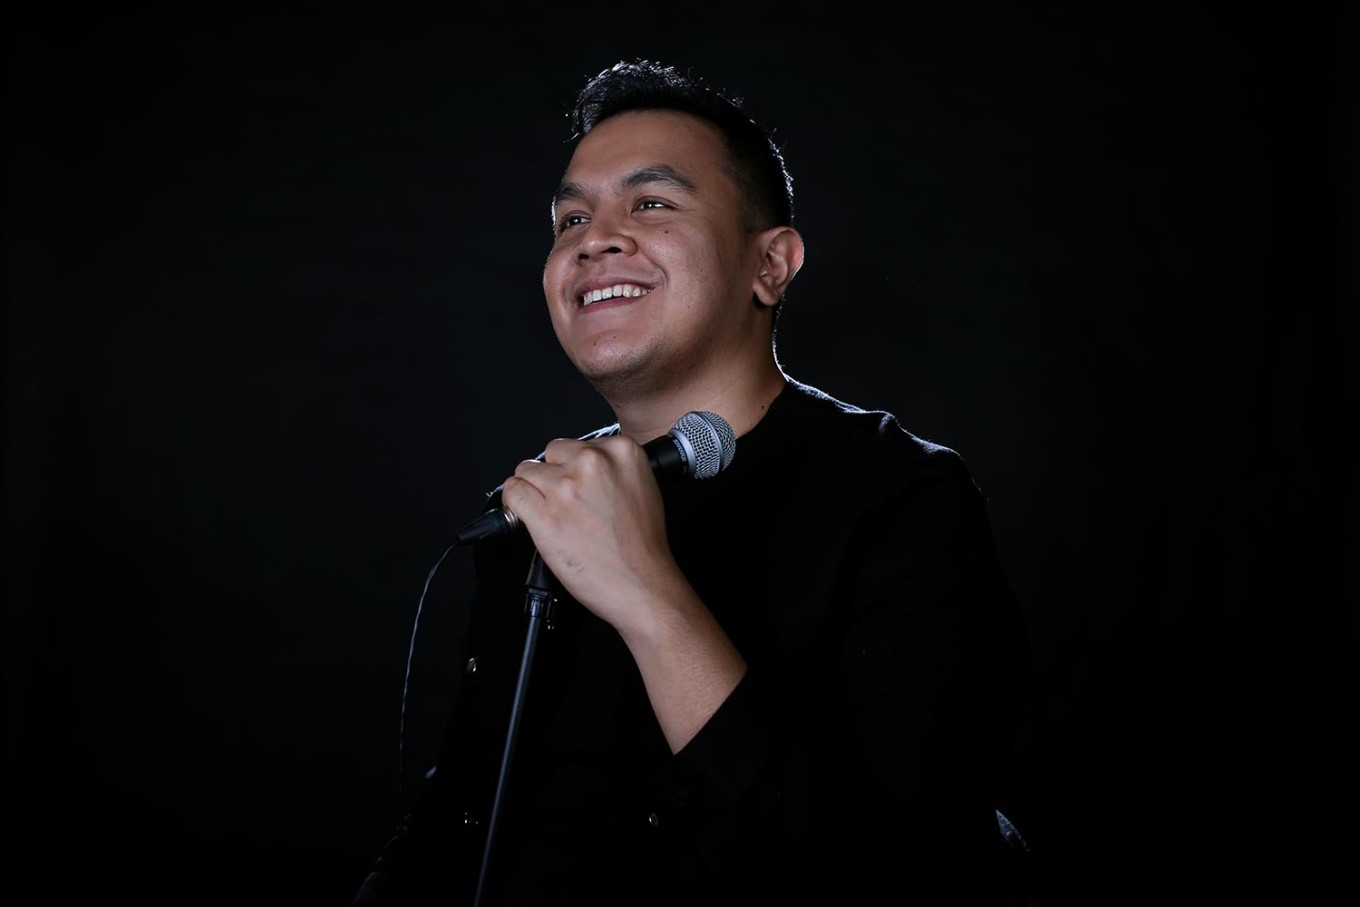 Tulus' 'Monokrom' concert to feature 100 musicians